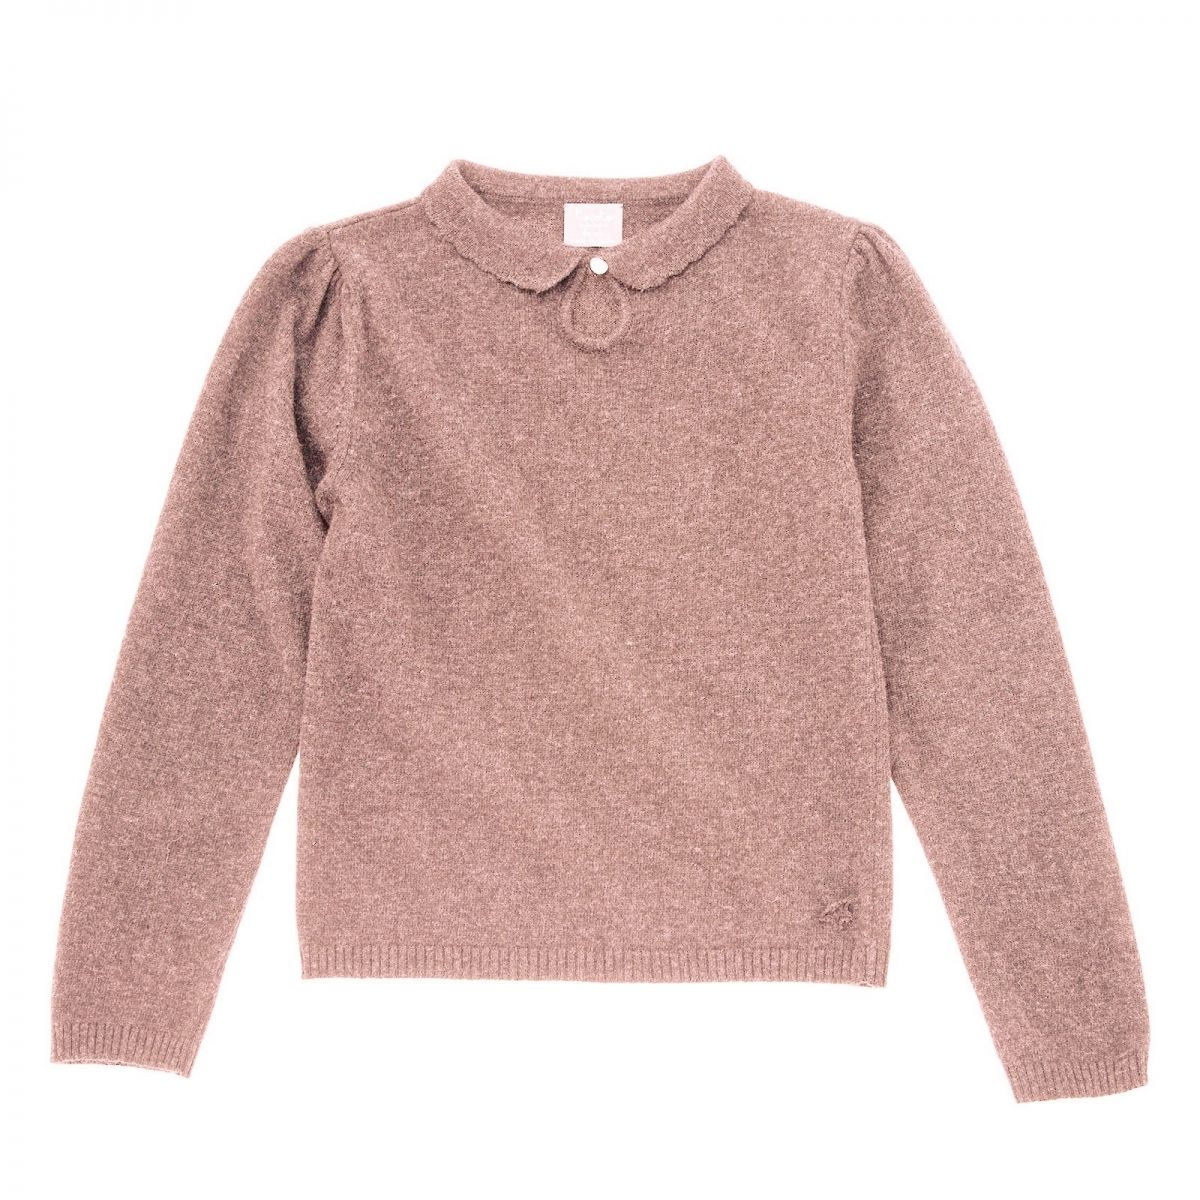 Tocoto Vintage - Sweter knitted różowy - 1